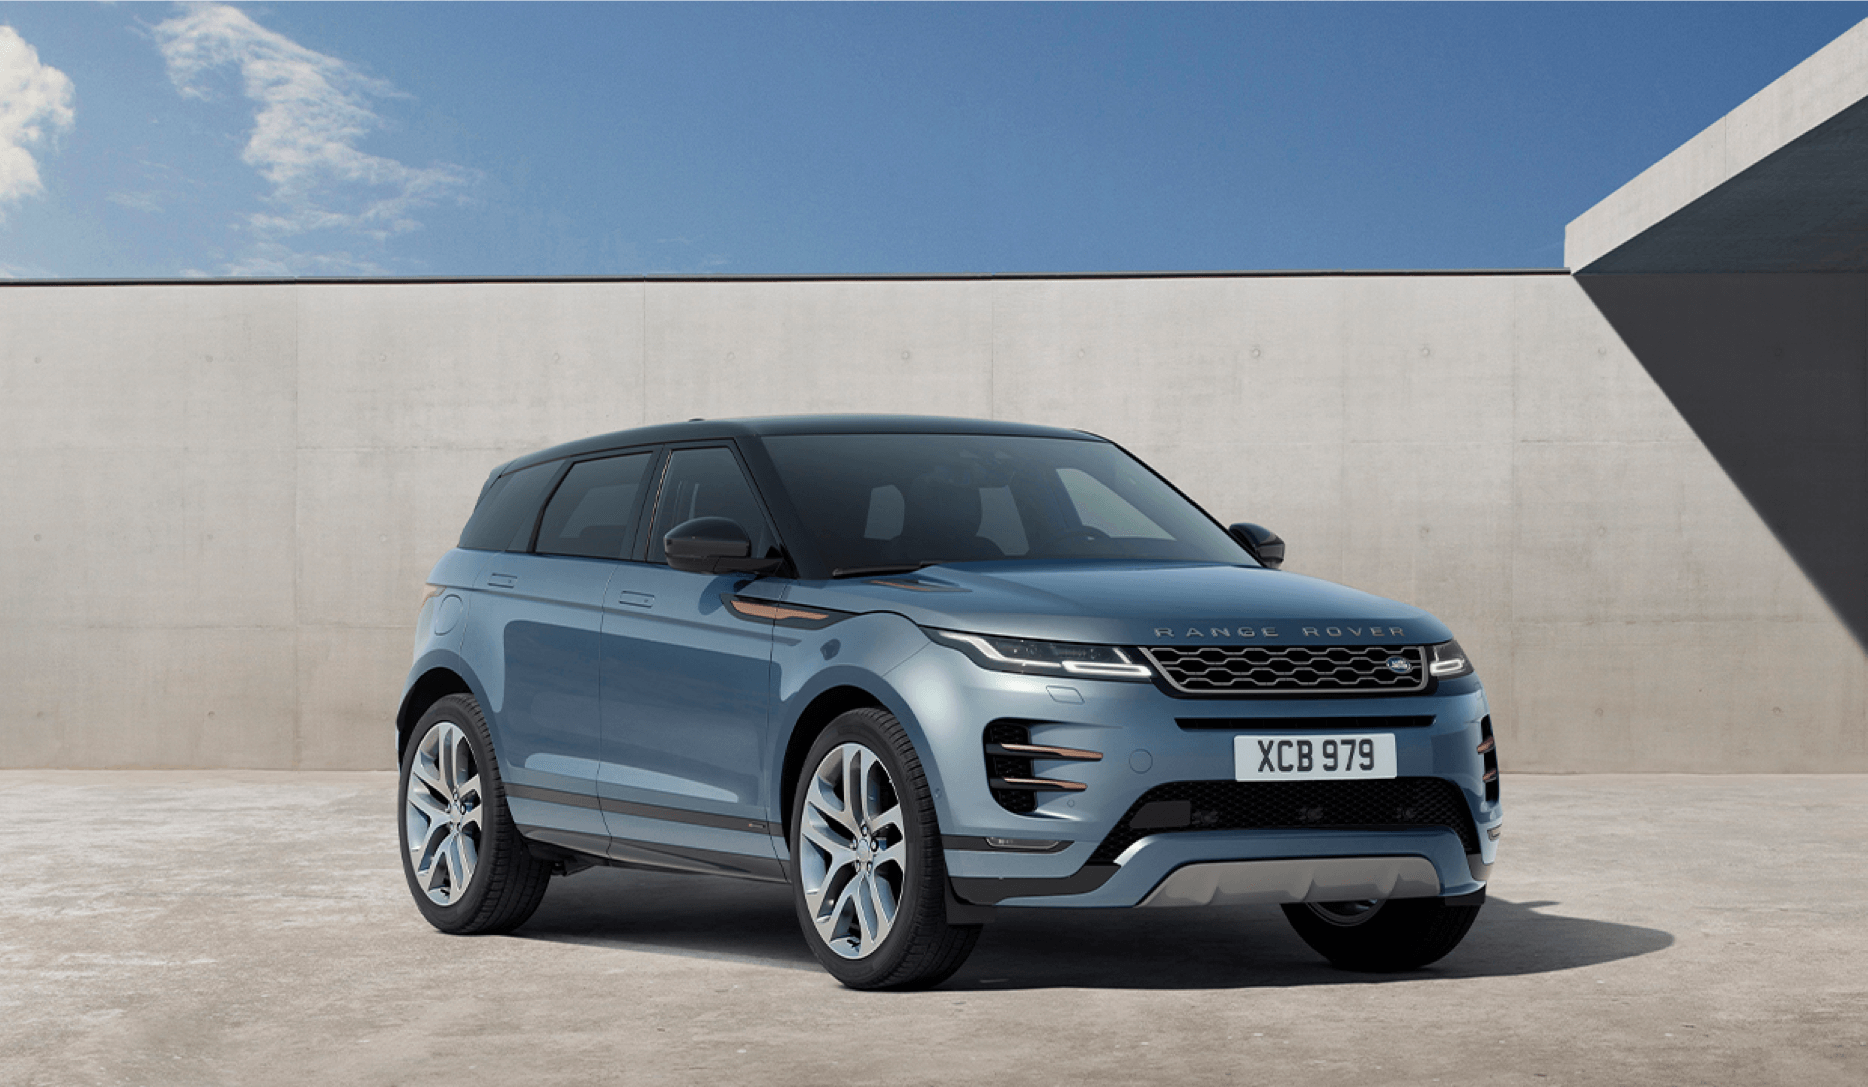 Range Rover Evoque - newest arrival